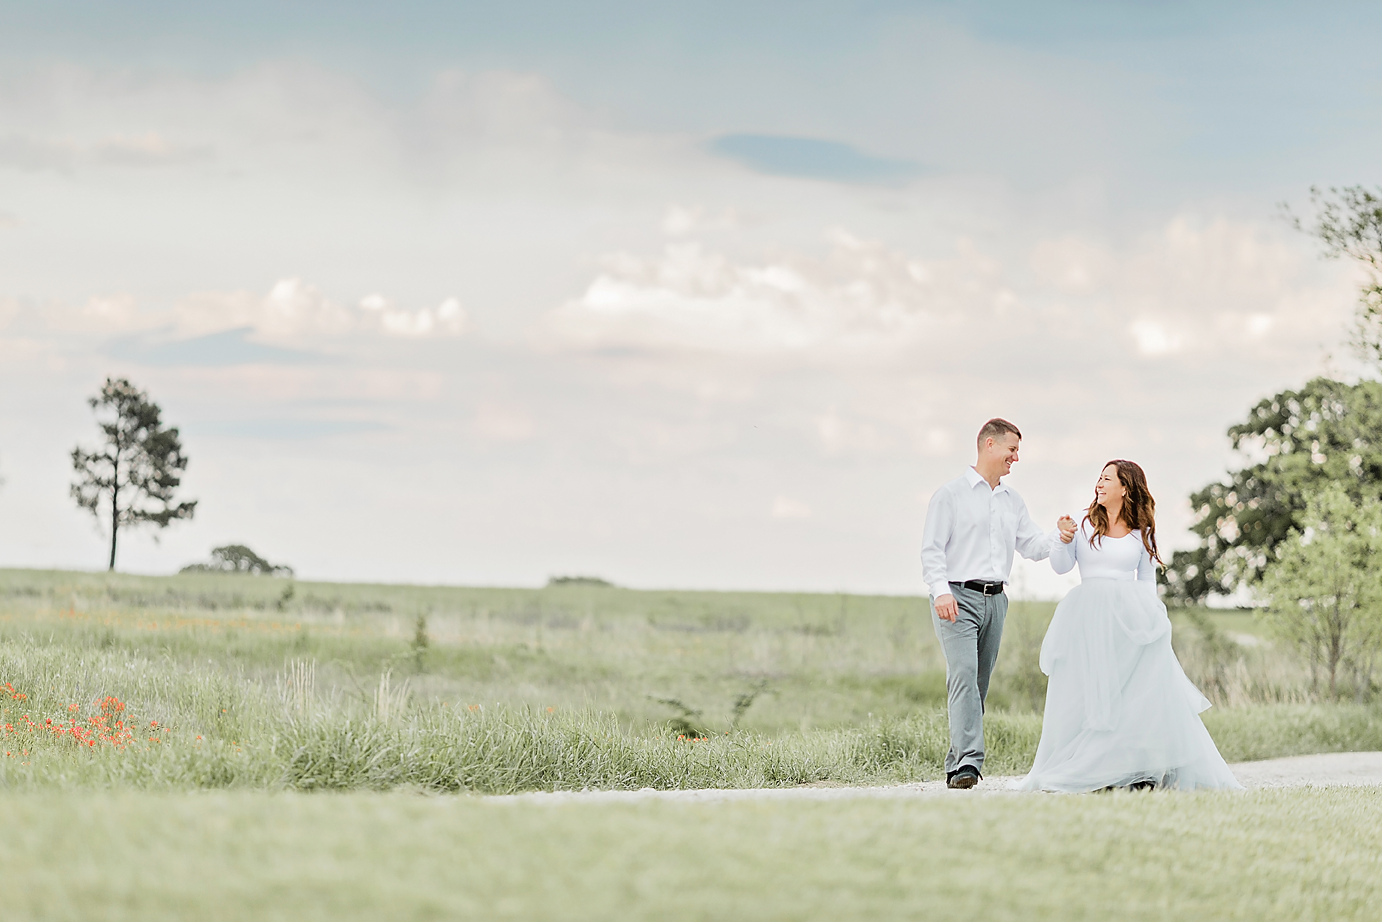 Dallas Wedding Photographer Flower Mound anniversary Photographer Kim Brett Texas Ranch Kate Marie Portraiture 11.png